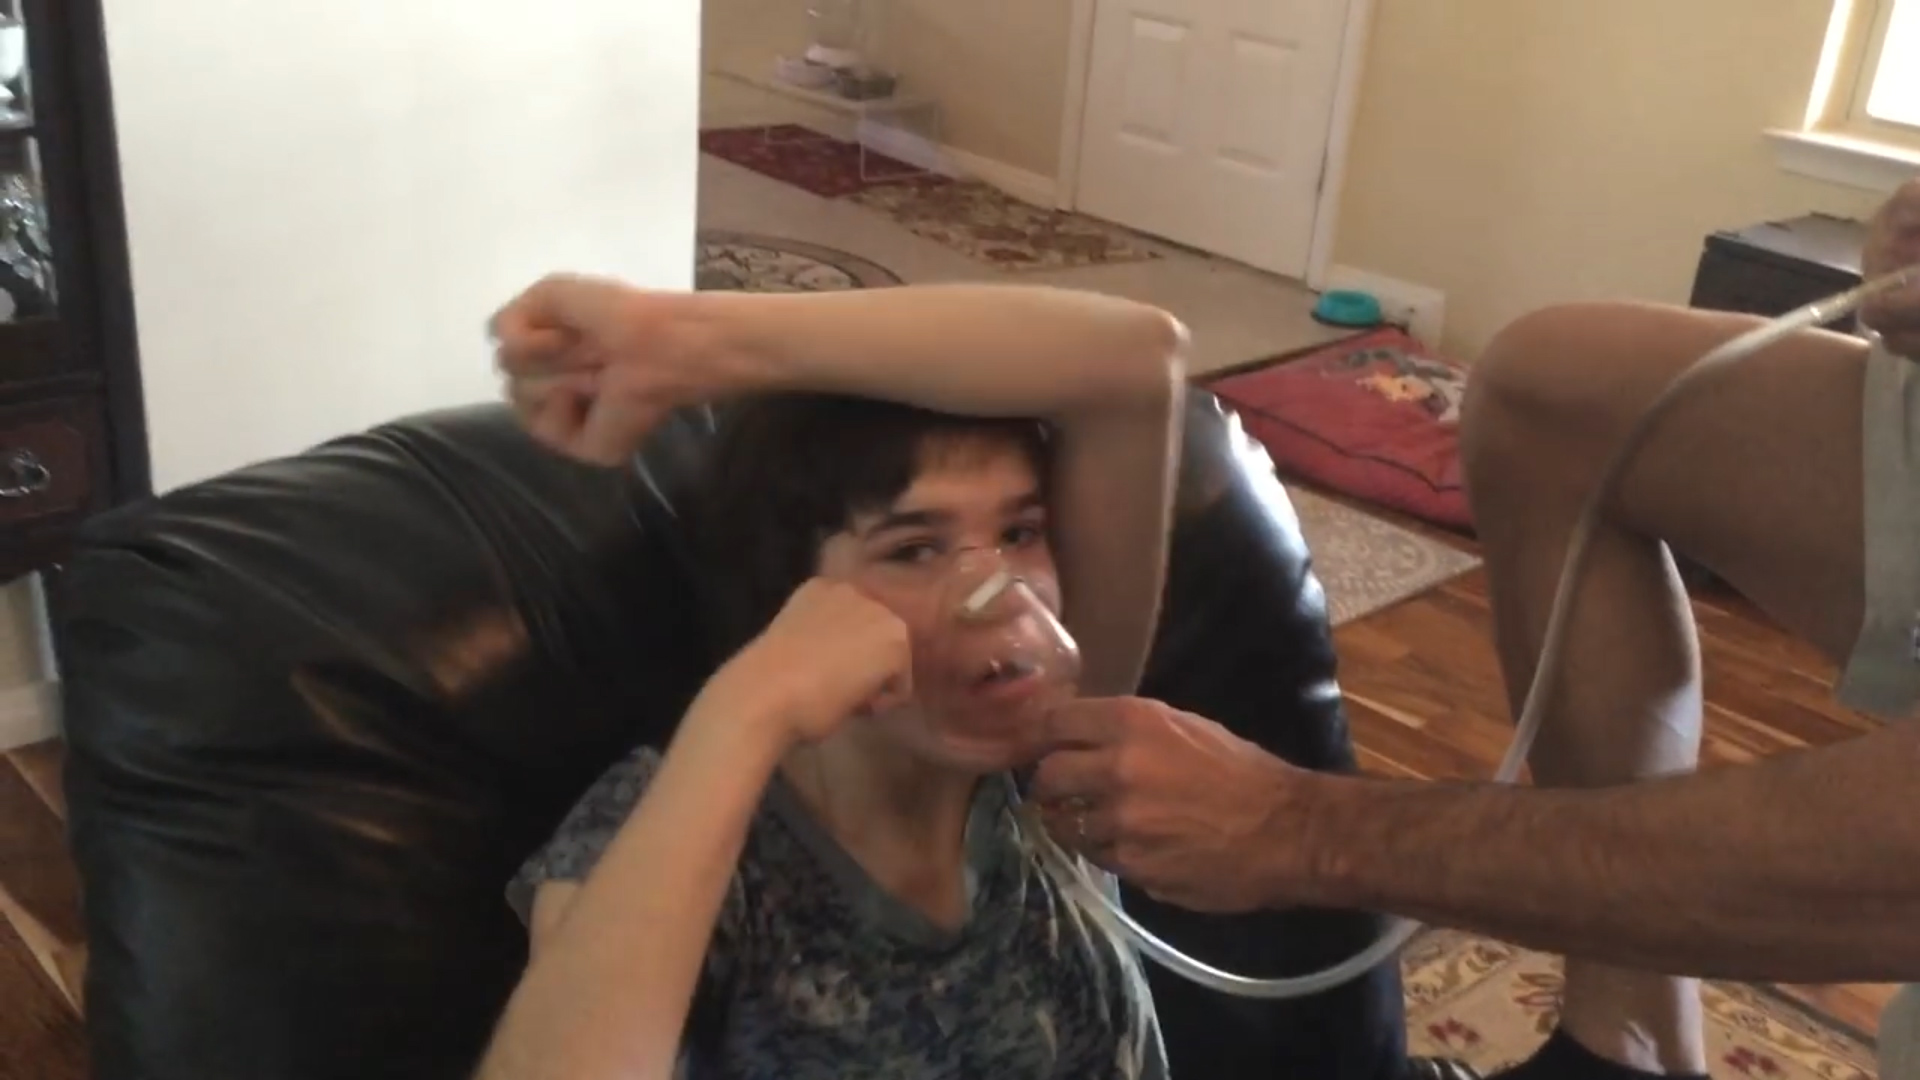 'There is no other medicine': Texas father breaks law to treat self-harming autistic daughter with marijuana